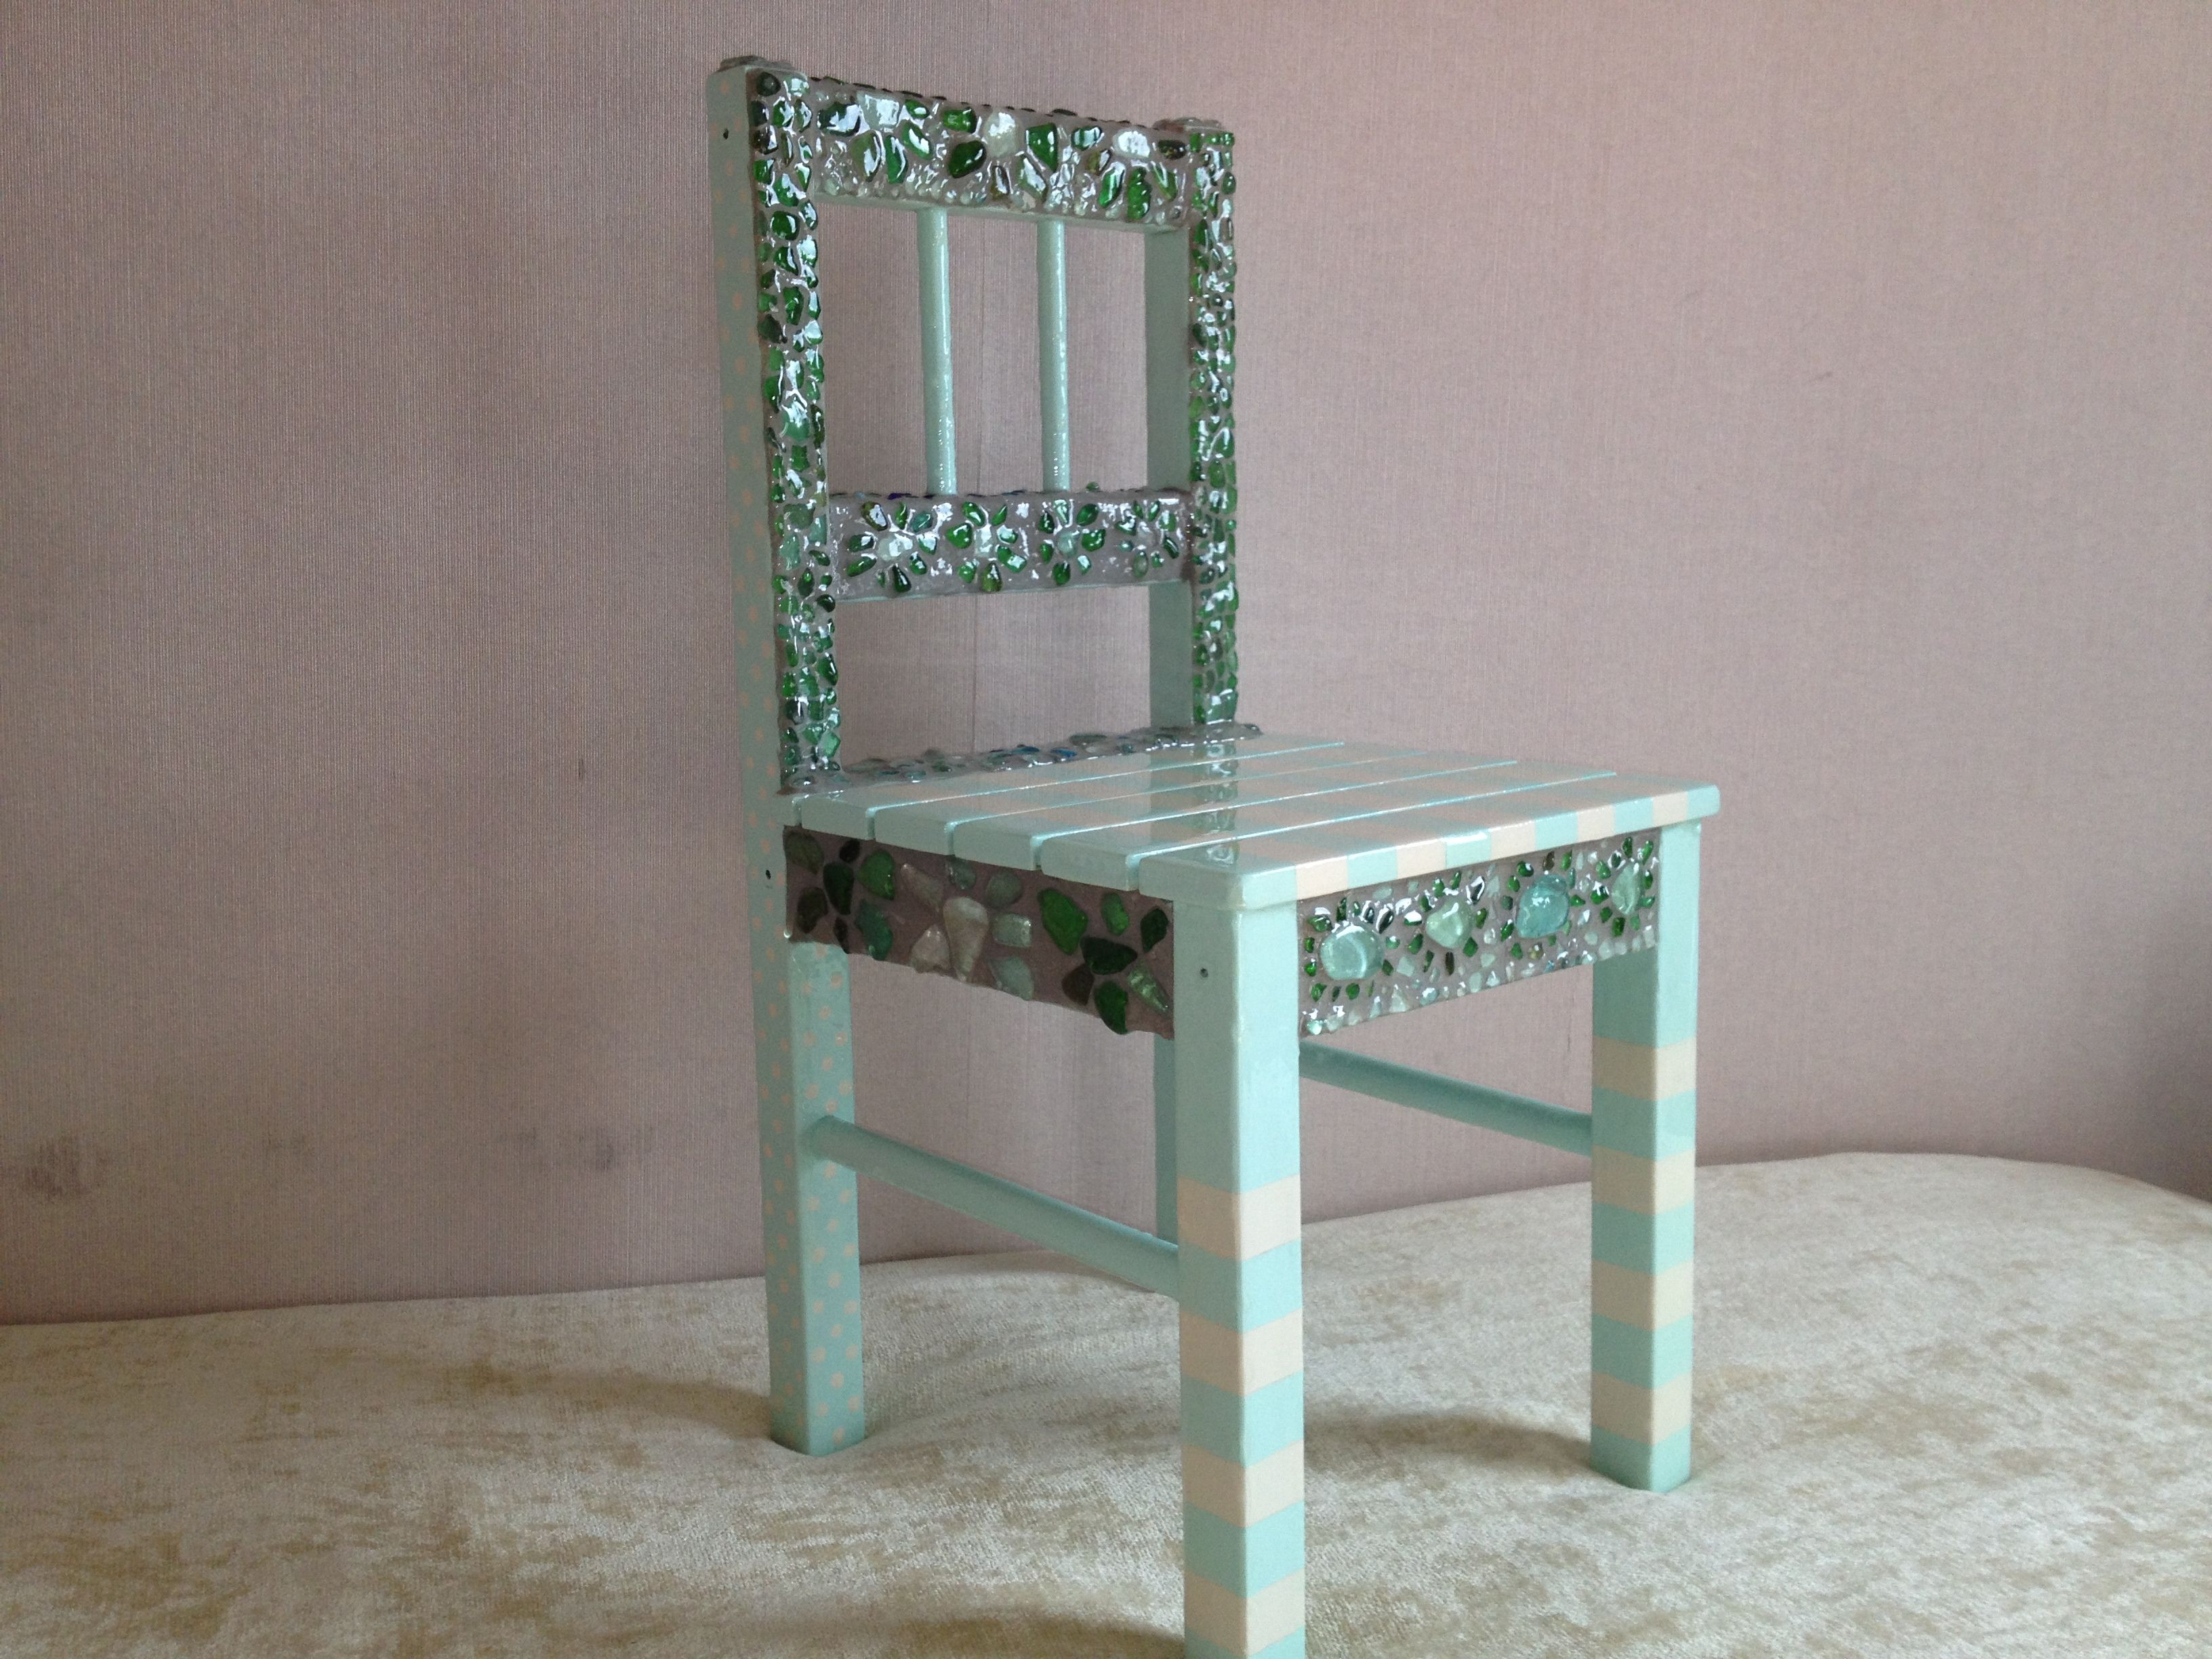 Child's chair with sea glass